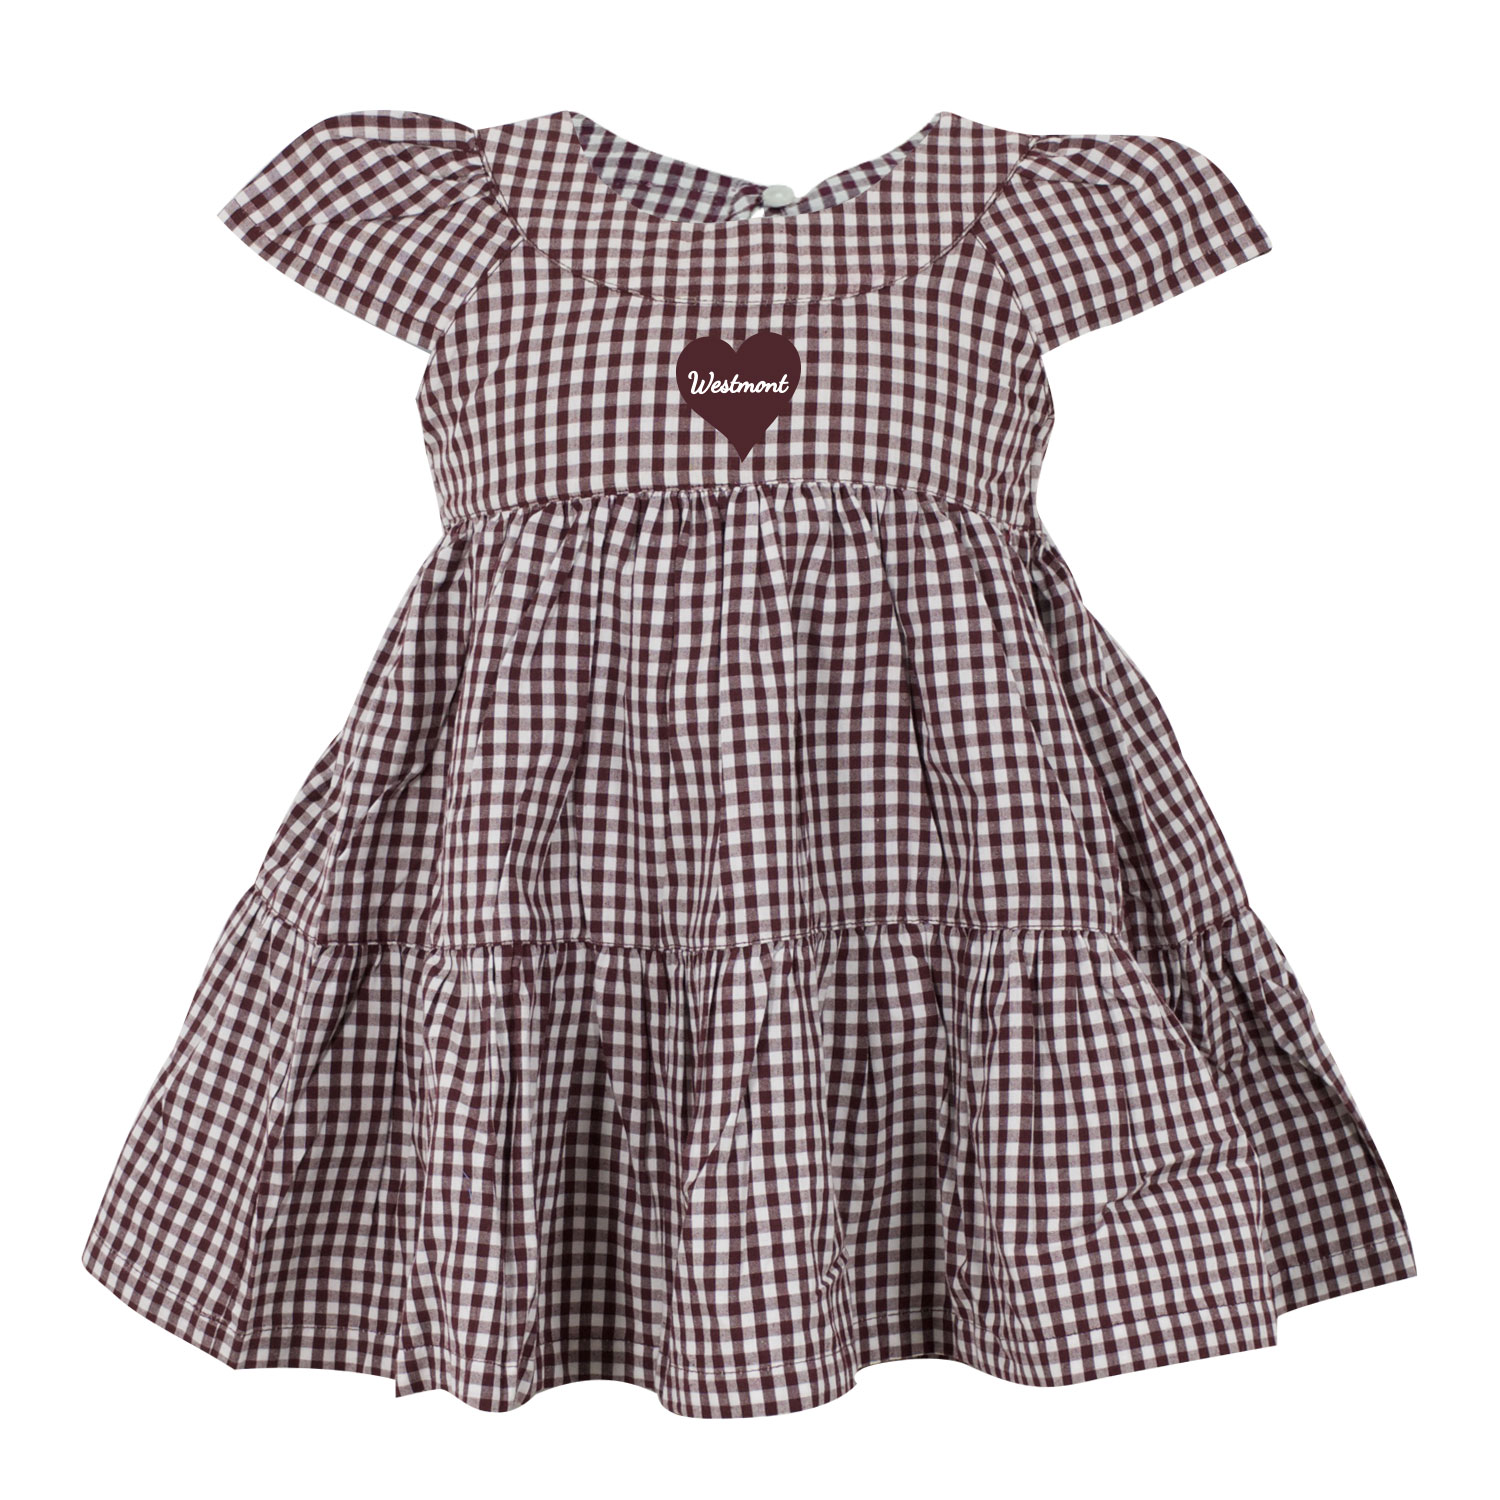 Image for the Garb Brigitte Youth Dress product